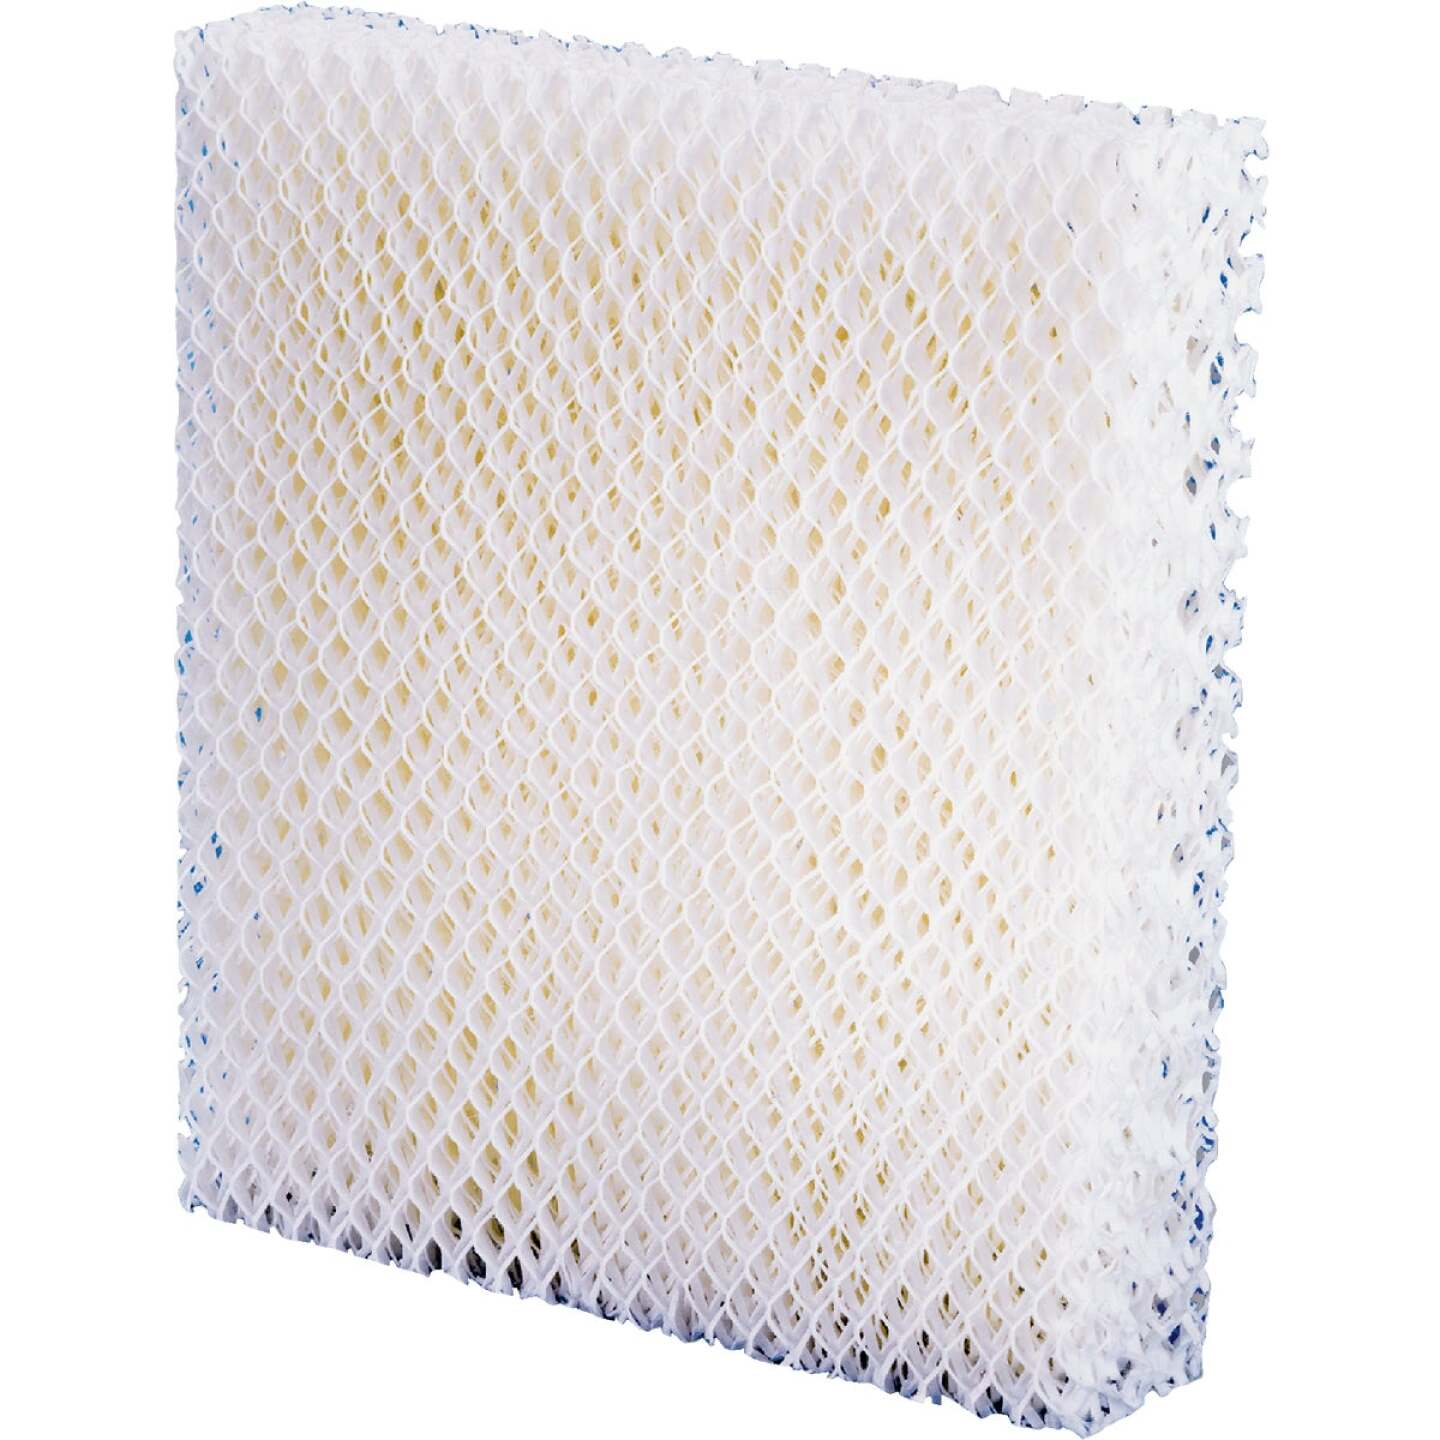 Honeywell HFT600 Humidifier Wick Filter Image 1